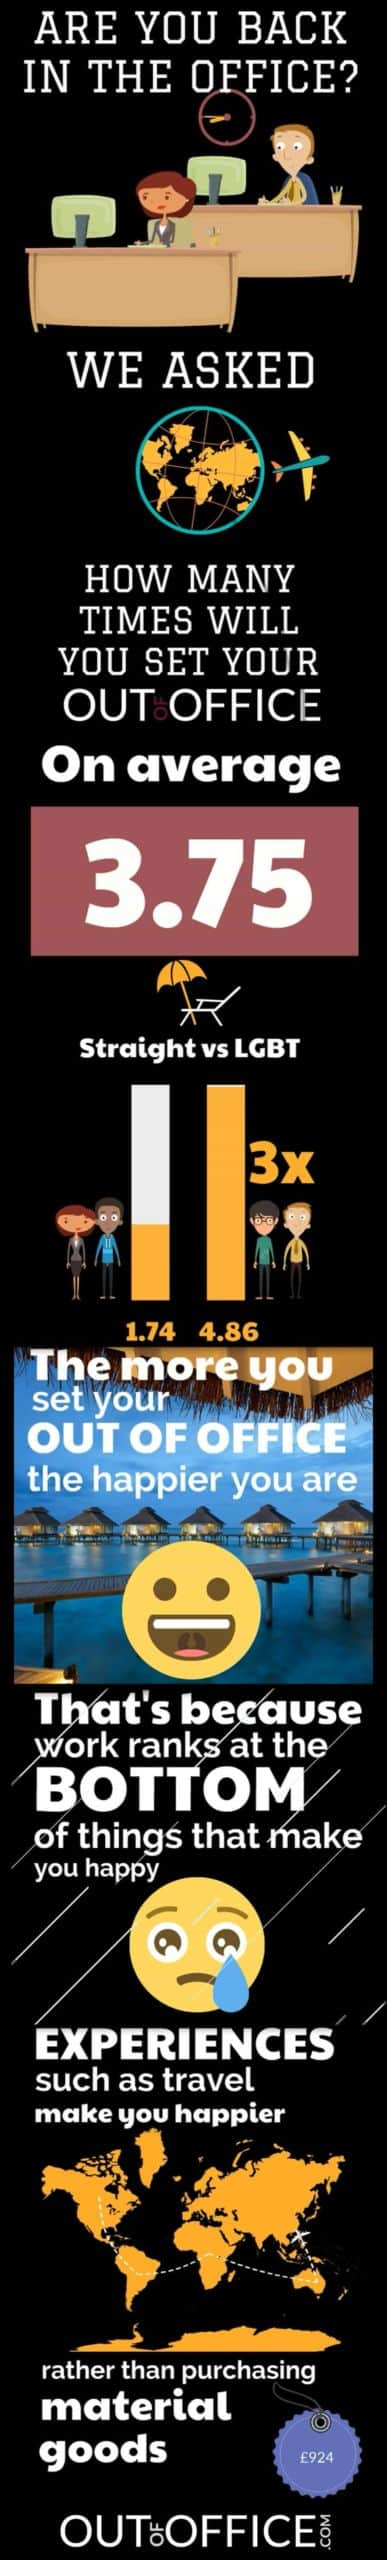 LGBT travellers infographic - Out Of Office 2017